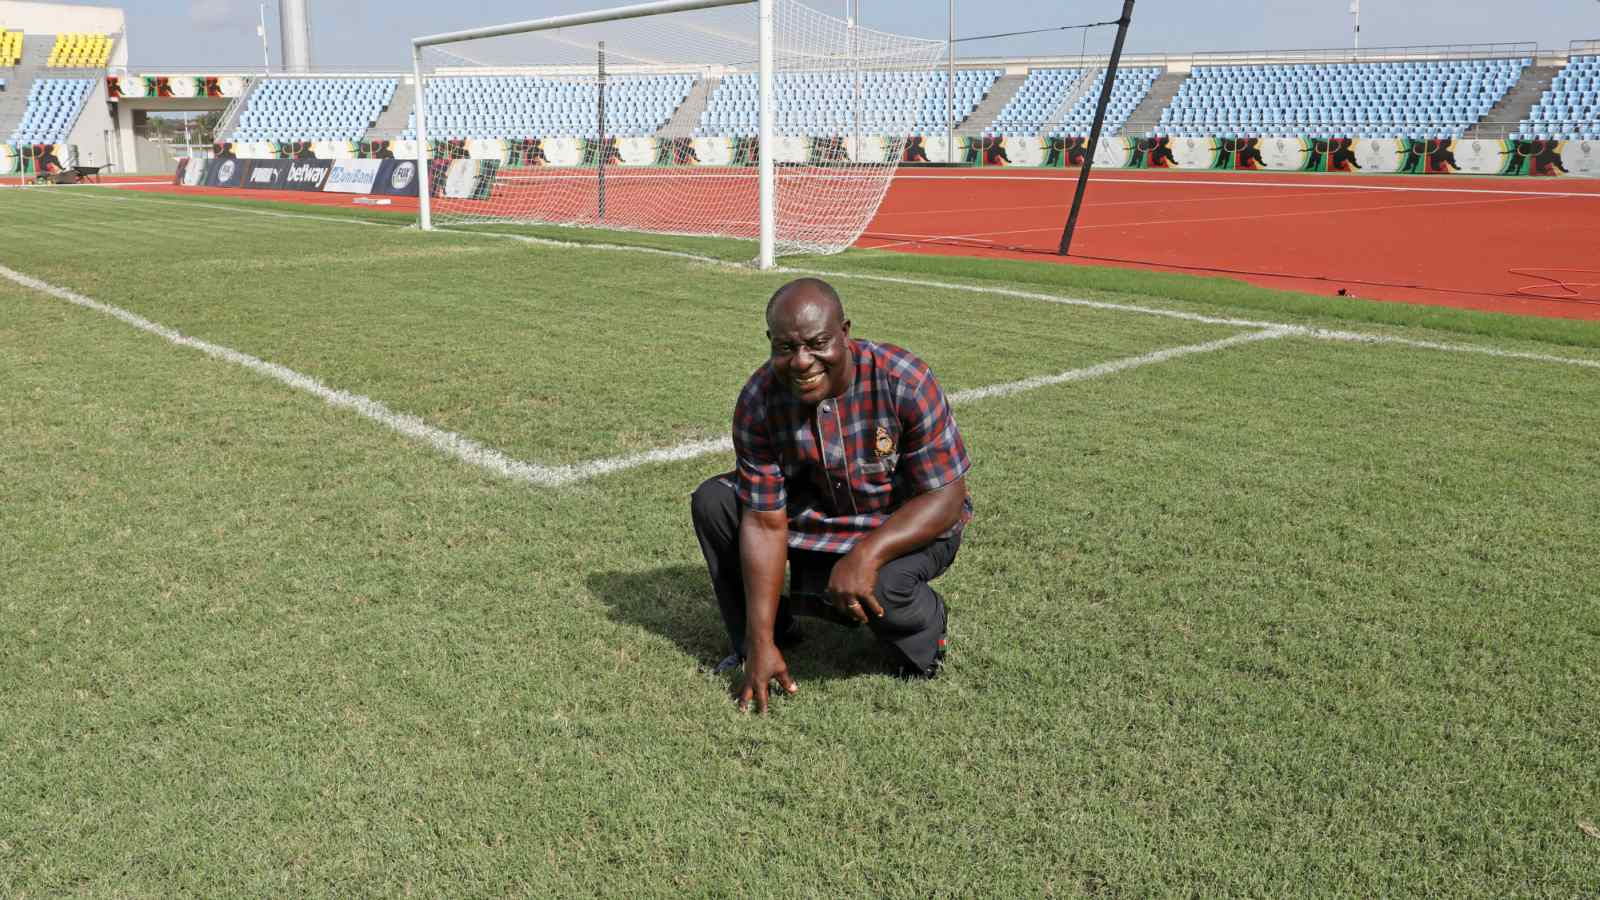 Clubs should pay more attention to their pitches- Frank Boahene